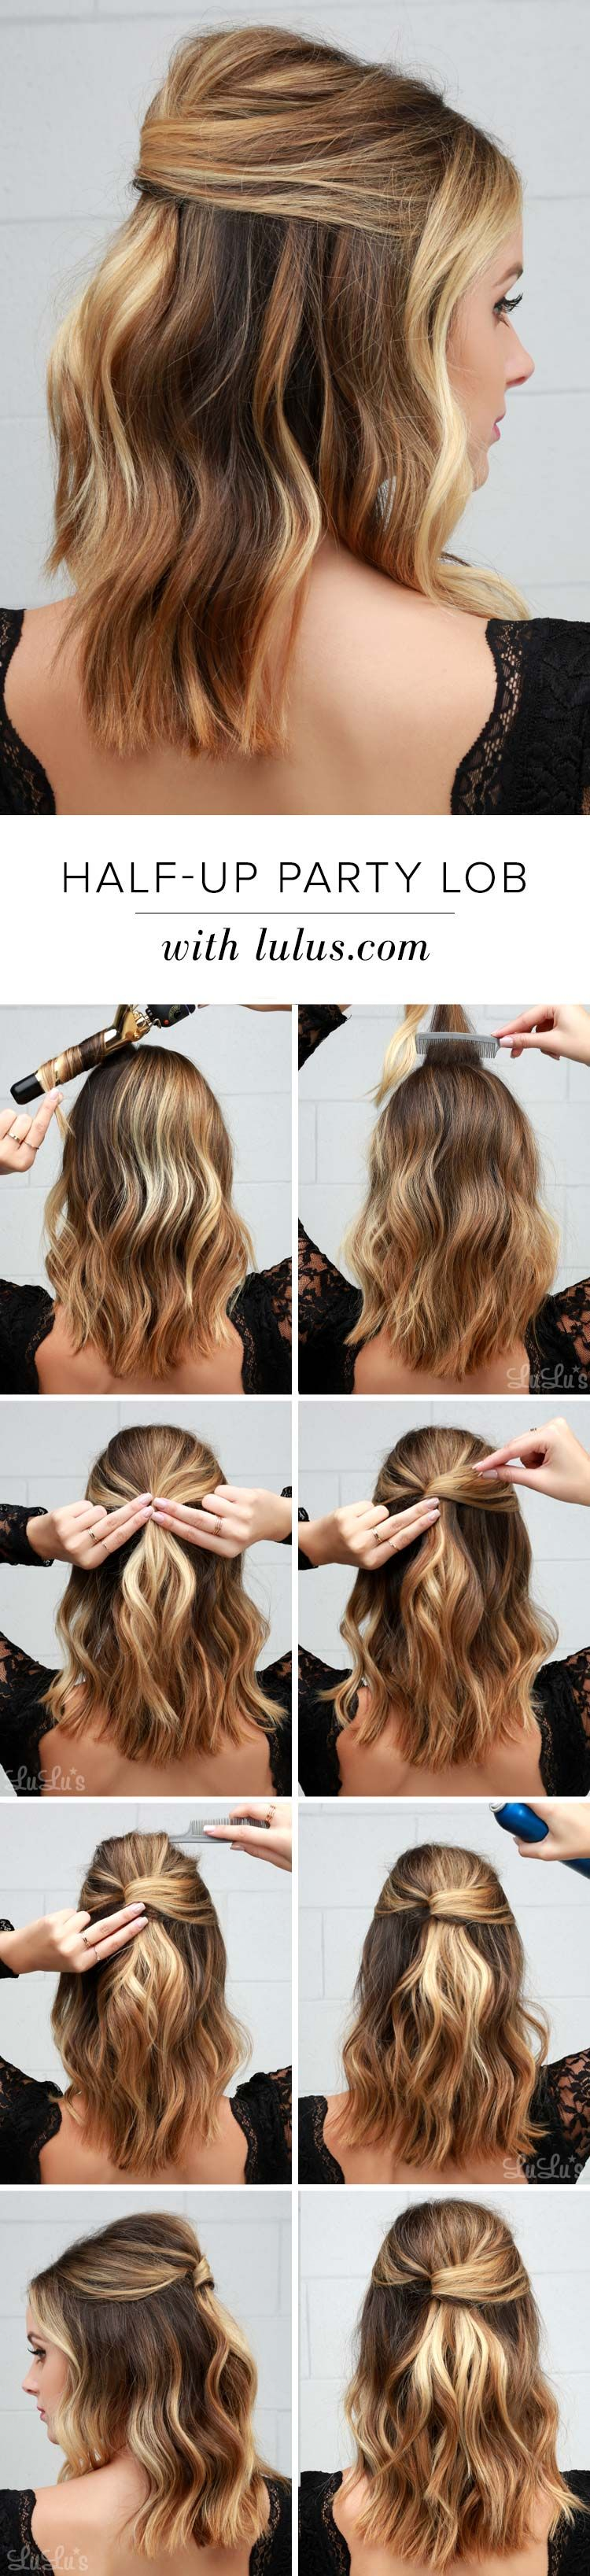 10 Simple And Easy Lazy Girl Hairstyle Tips That Are Done In Less Time Hair Styles Long Hair Styles Diy Hairstyles Easy